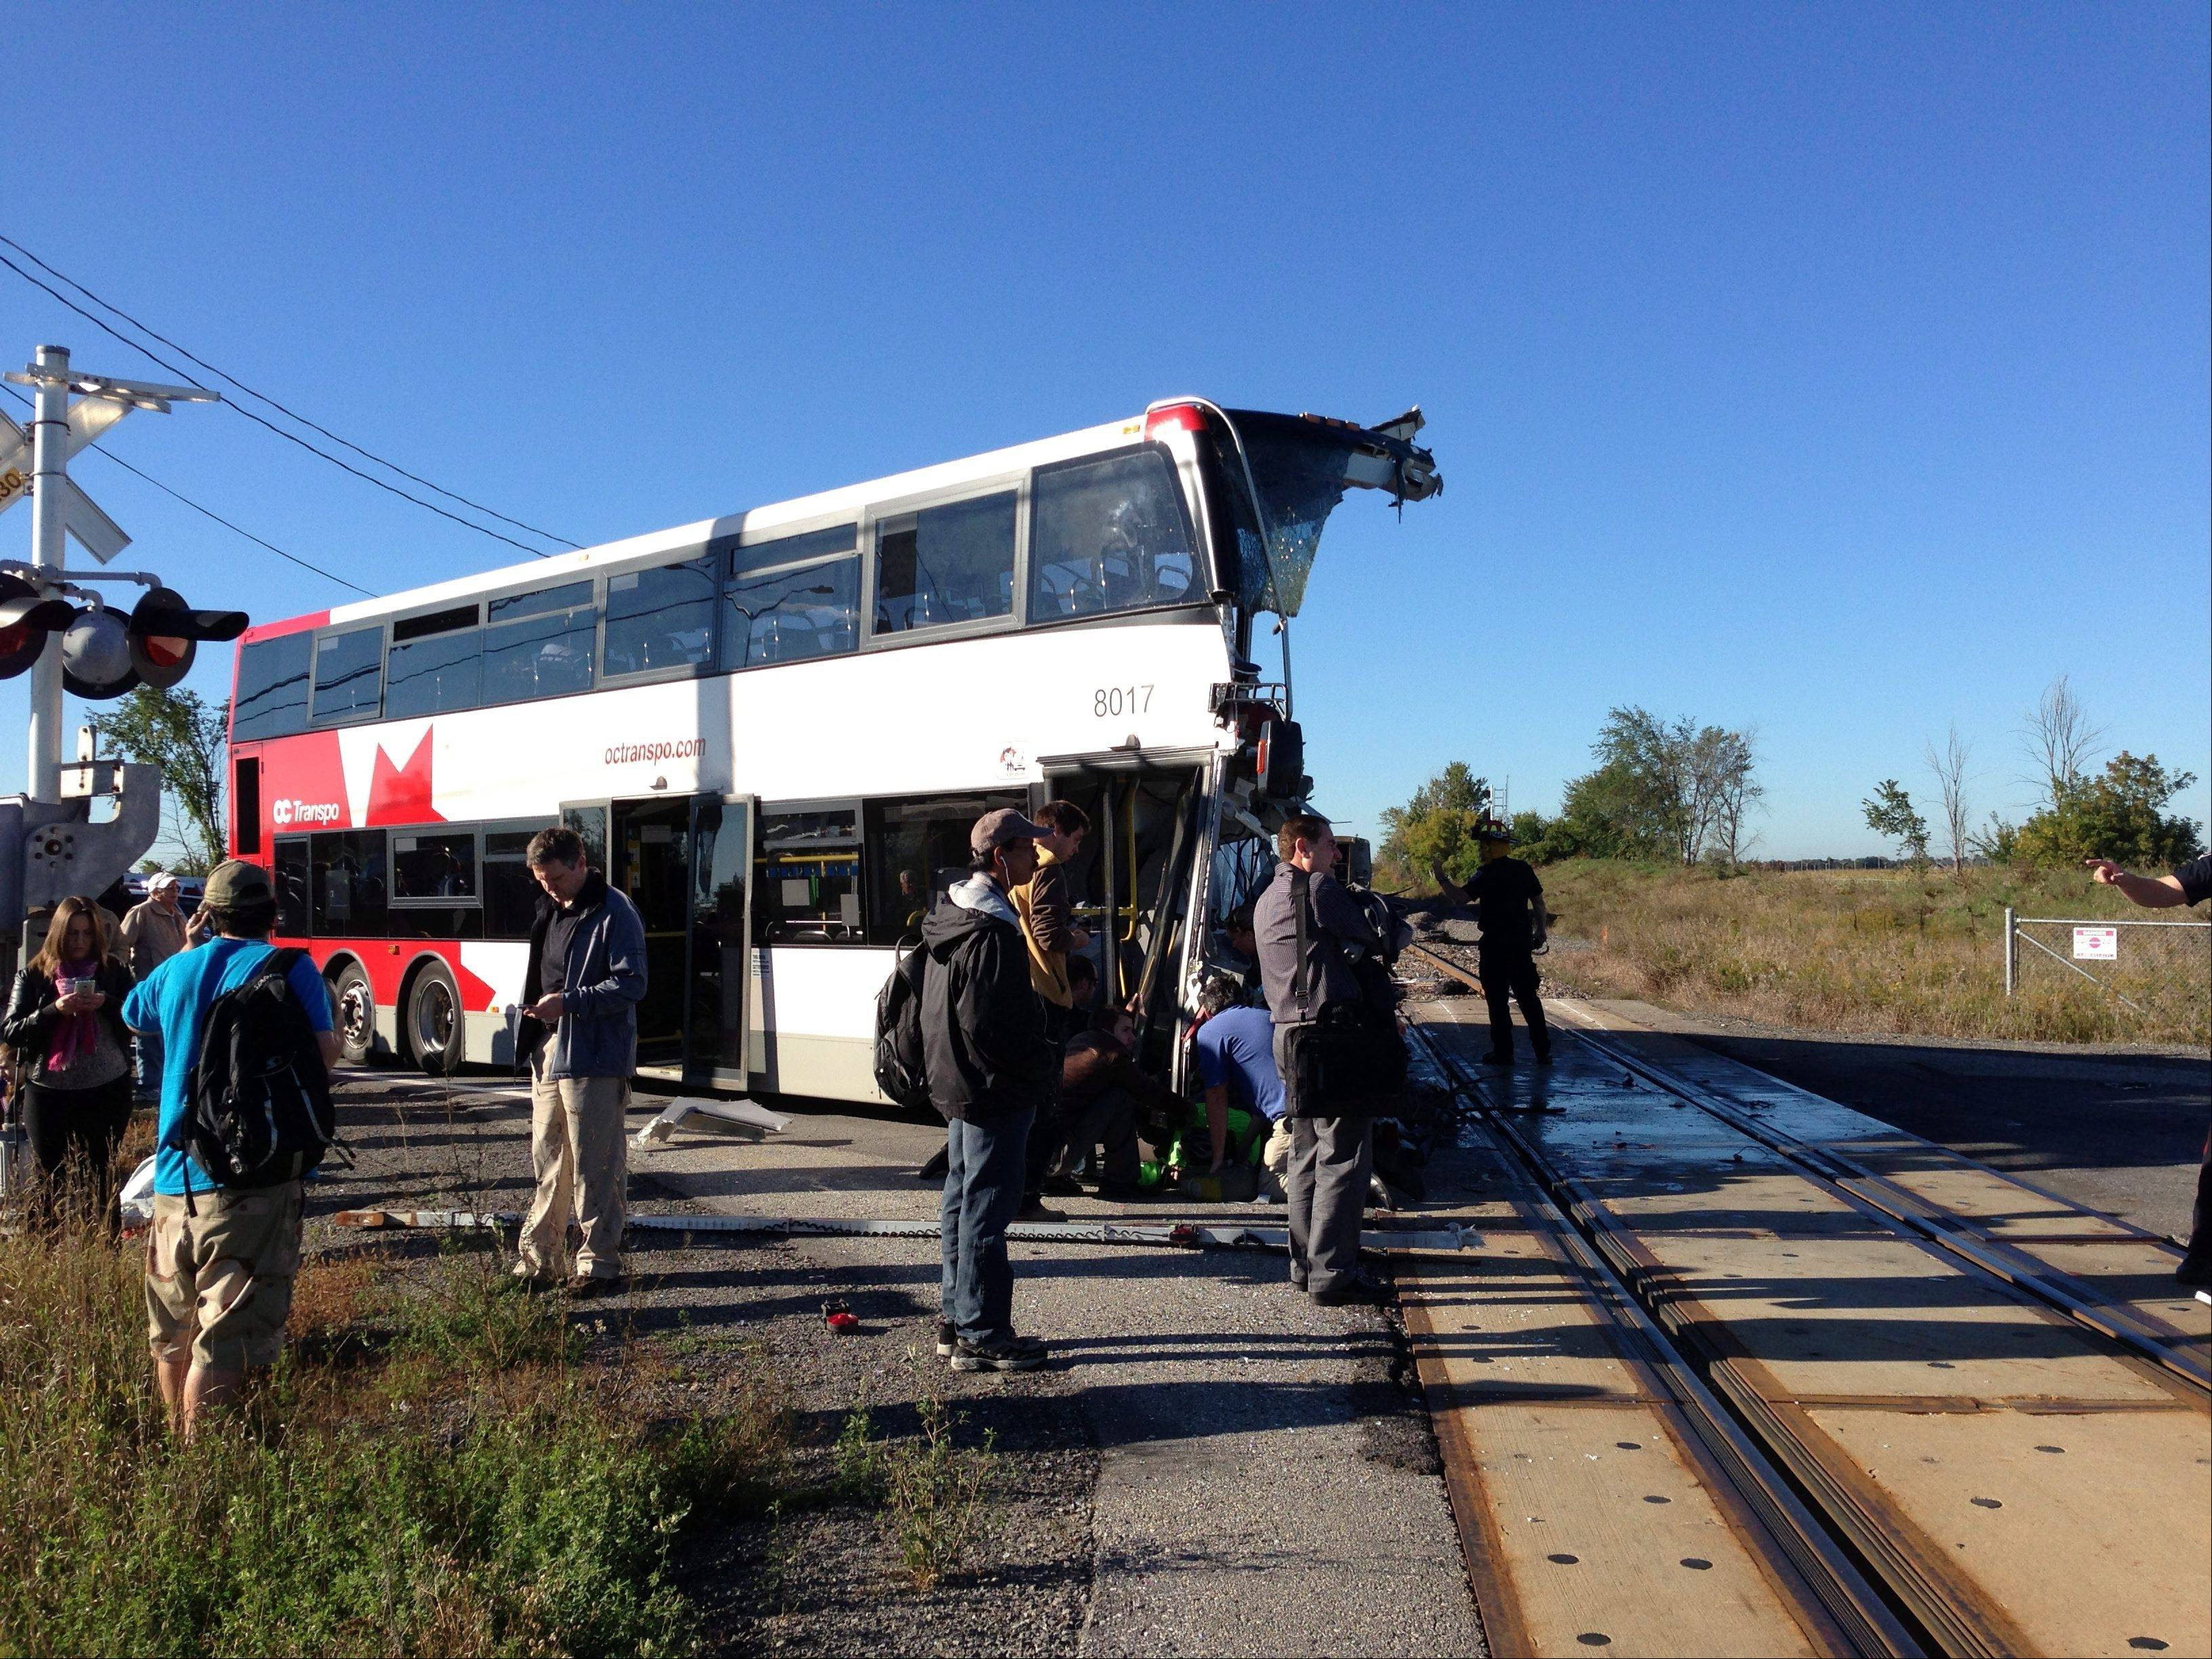 A city bus is severely damaged after colliding with a Via Rail passenger train at a crossing in Ottawa, Ontario, Wednesday, Sept. 18, 2013. An Ottawa Fire spokesman told CP24 television there are ìmultiple fatalitiesî and a number are injured from the bus but no injuries on the train.